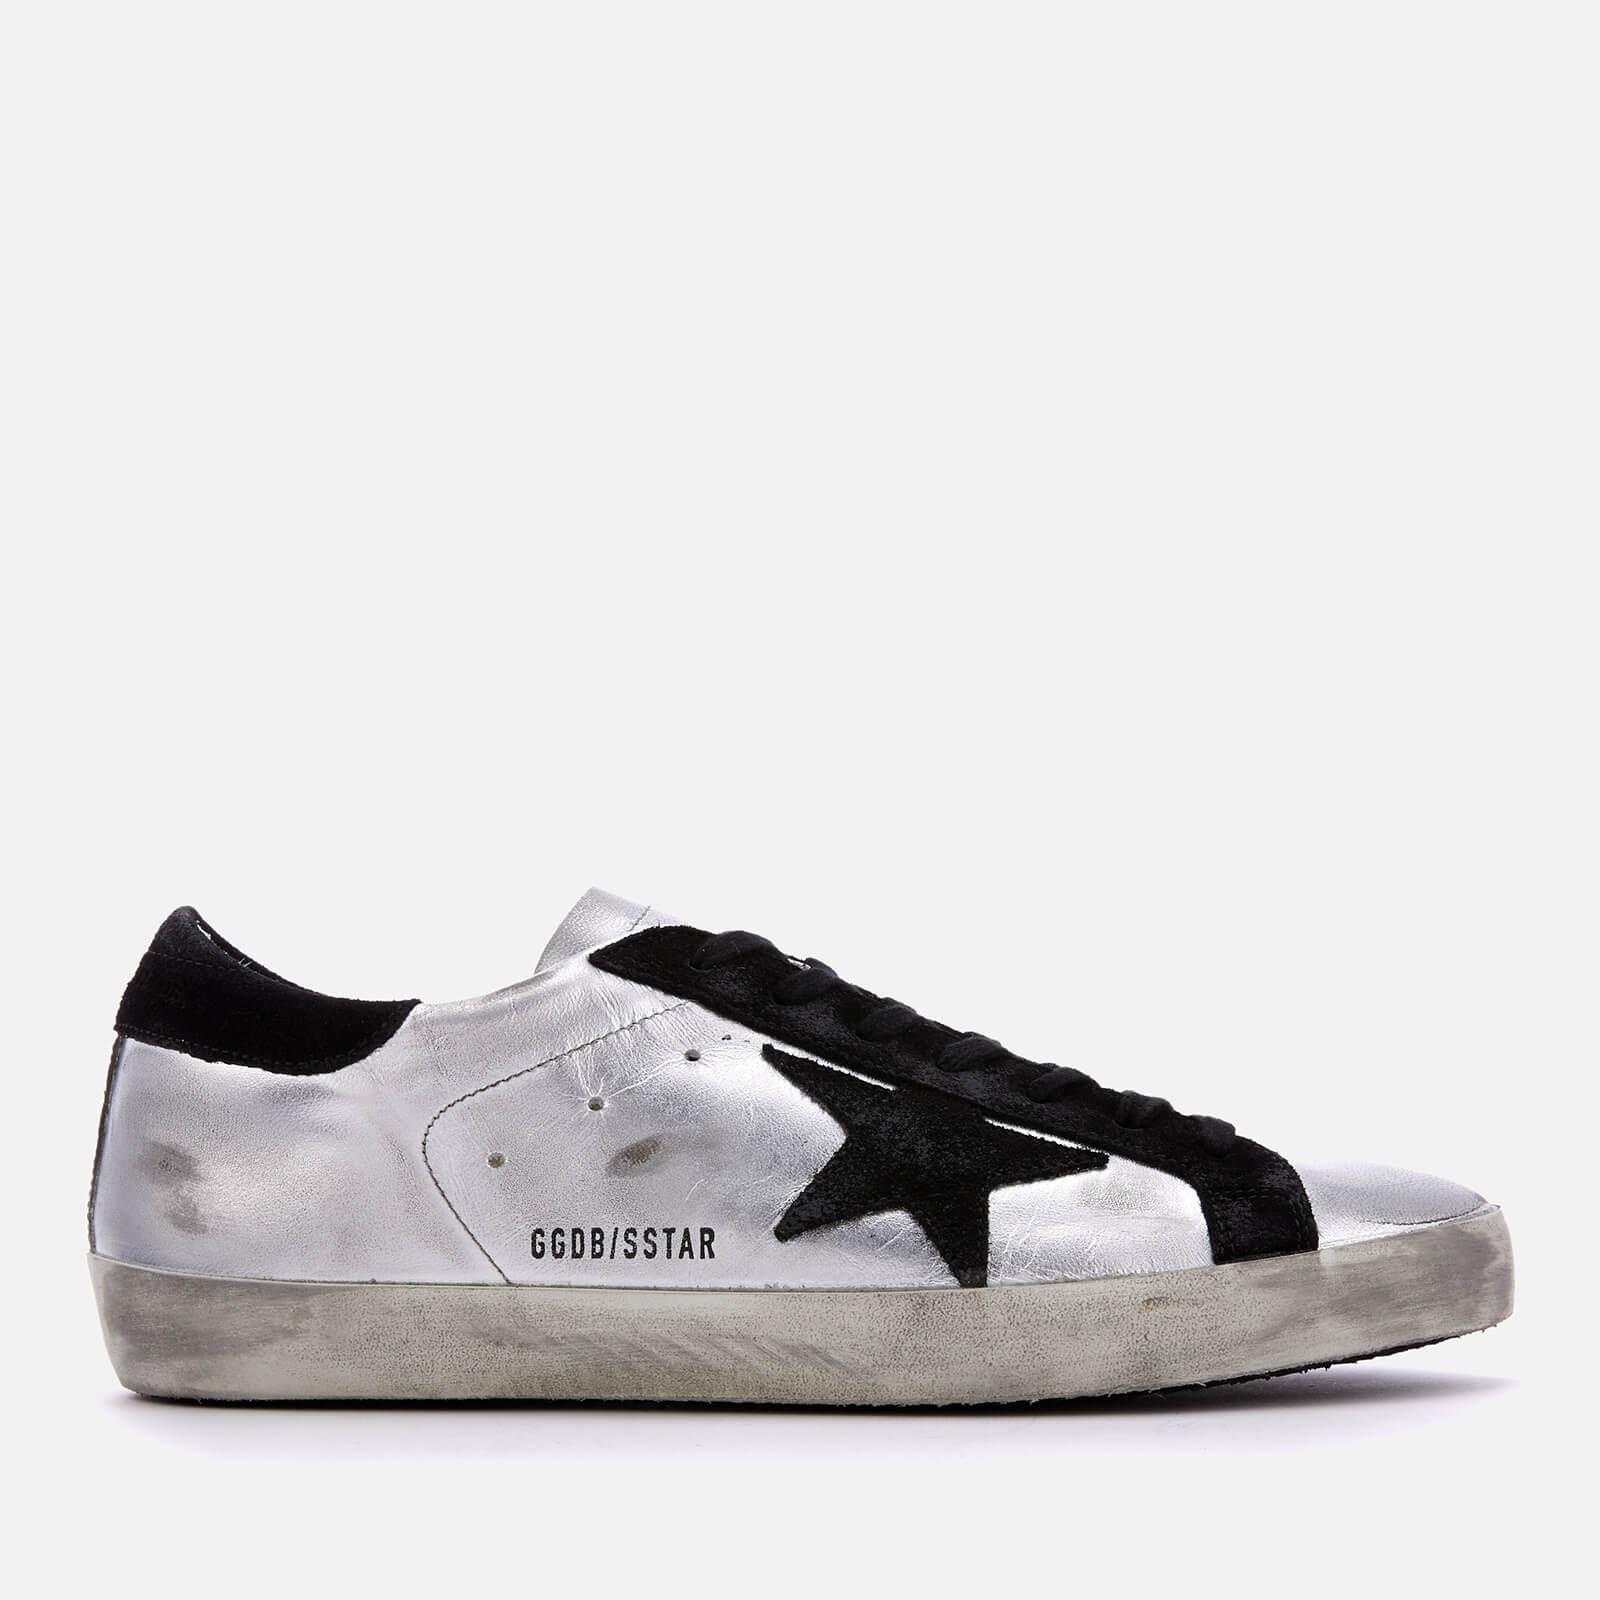 ebd117ae09ea Golden Goose Deluxe Brand Men s Superstar Sneakers - Silver Black Leather -  Free UK Delivery over £50